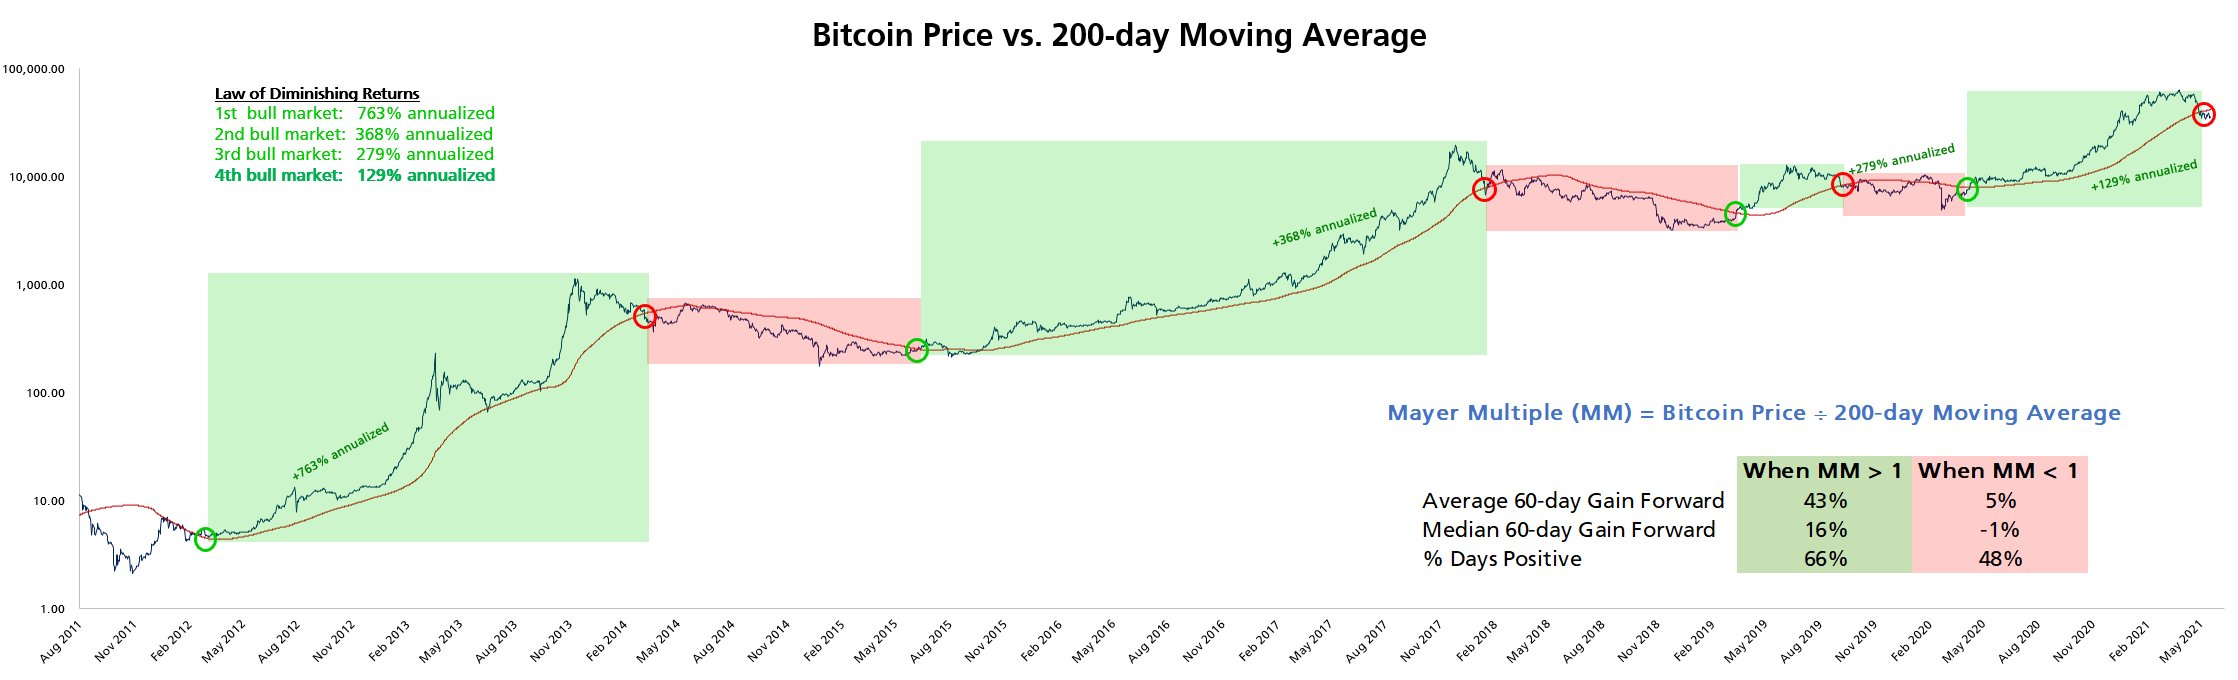 Bitcoin price behavior vs. 200-day moving average chart. Source: Timothy Peterson/Twitter